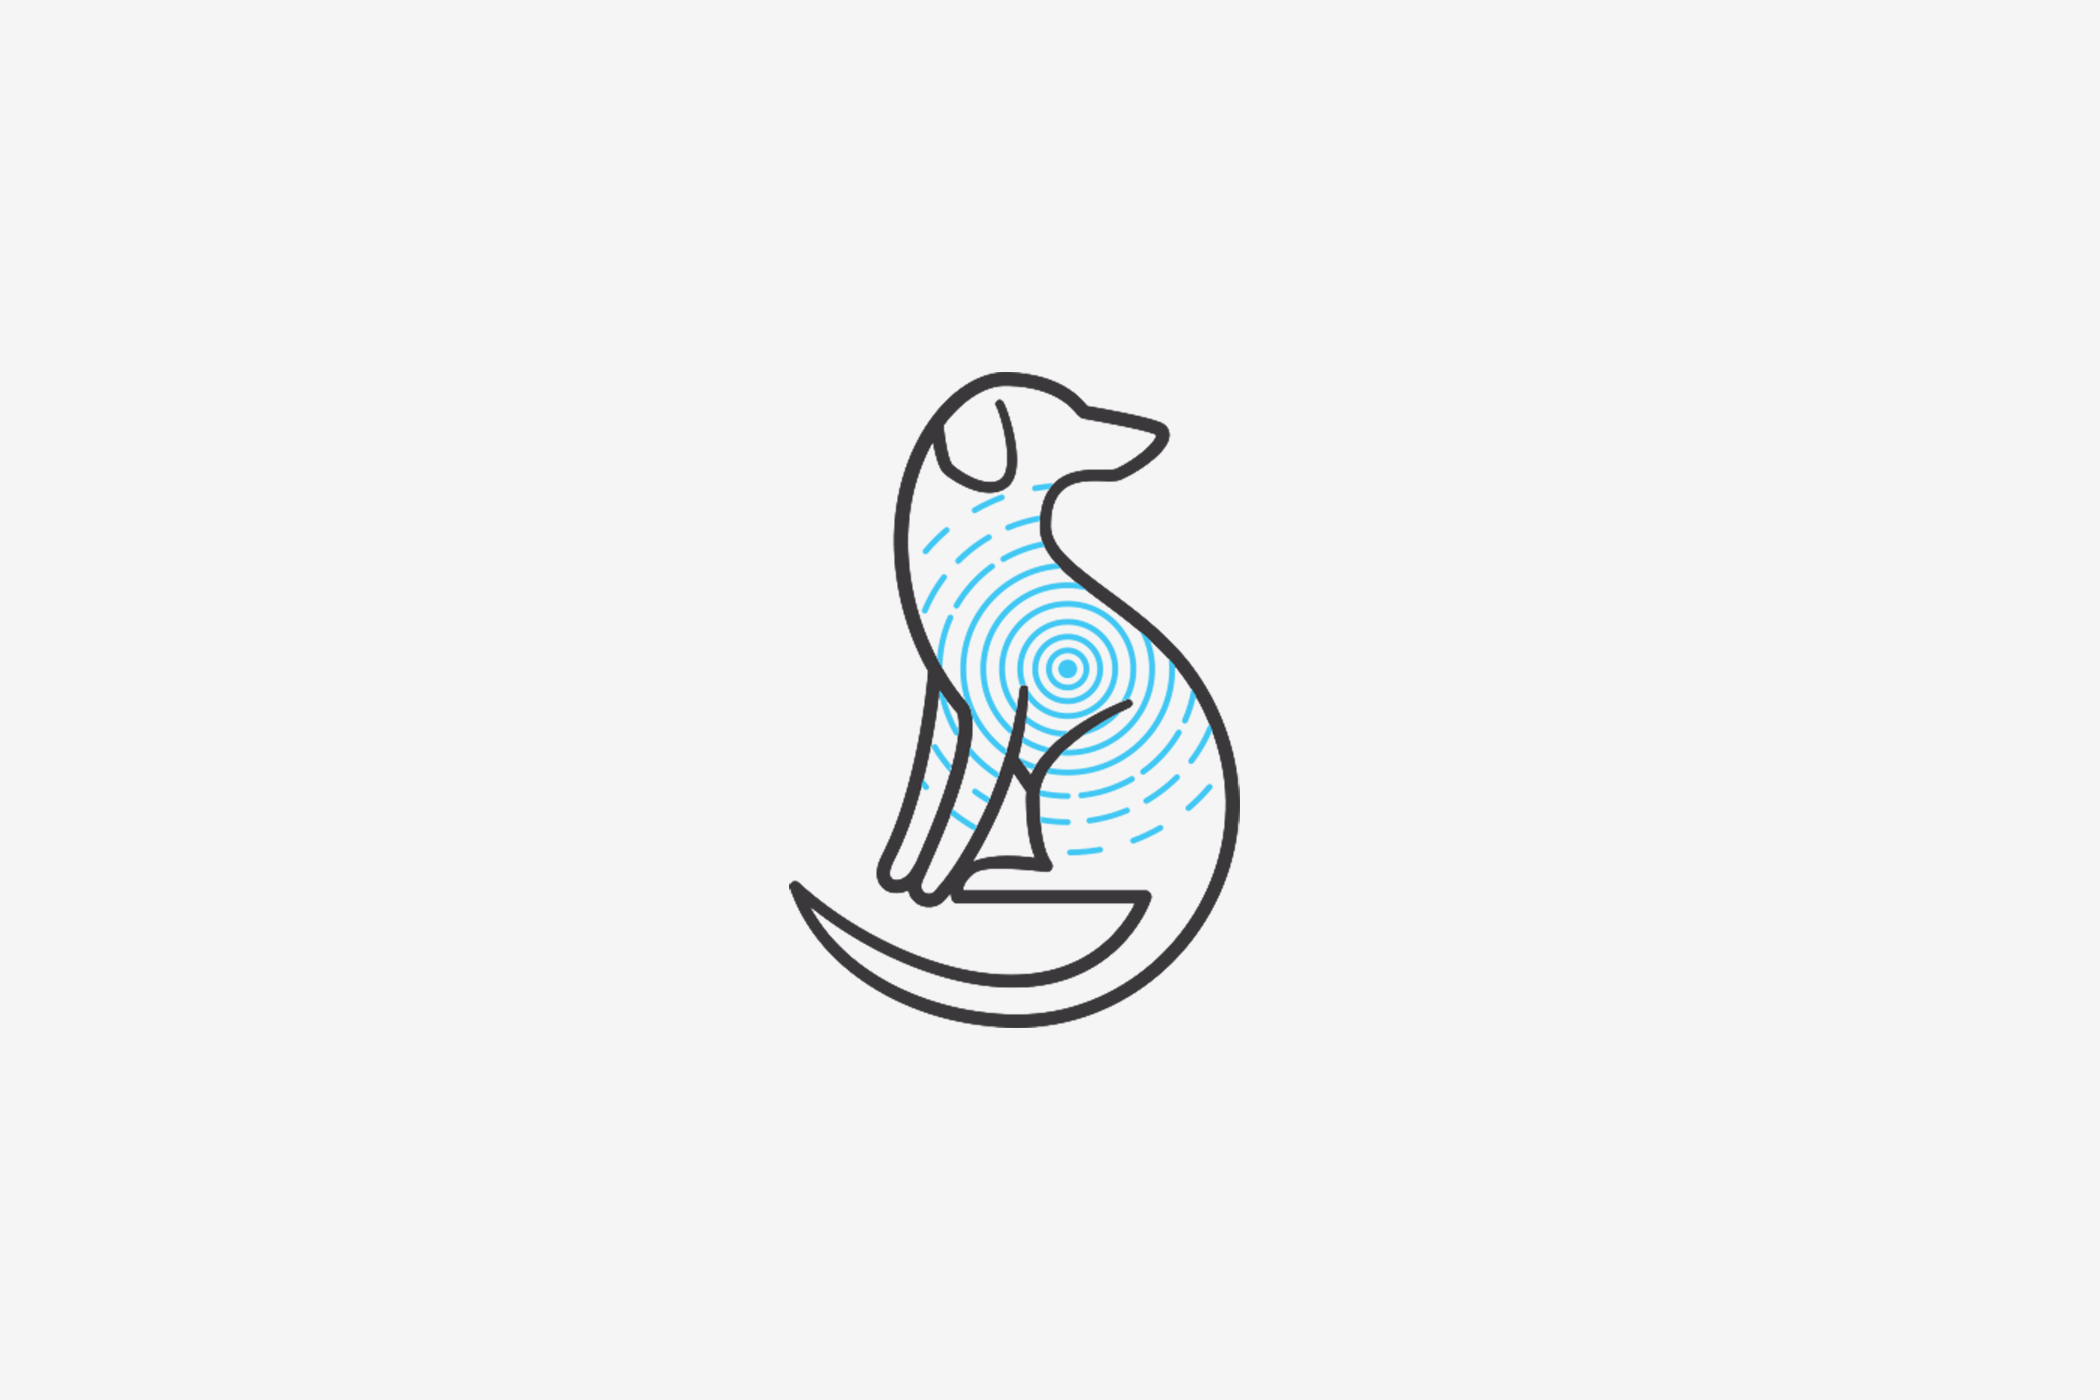 Dr Peterfia Dalma - dog logo